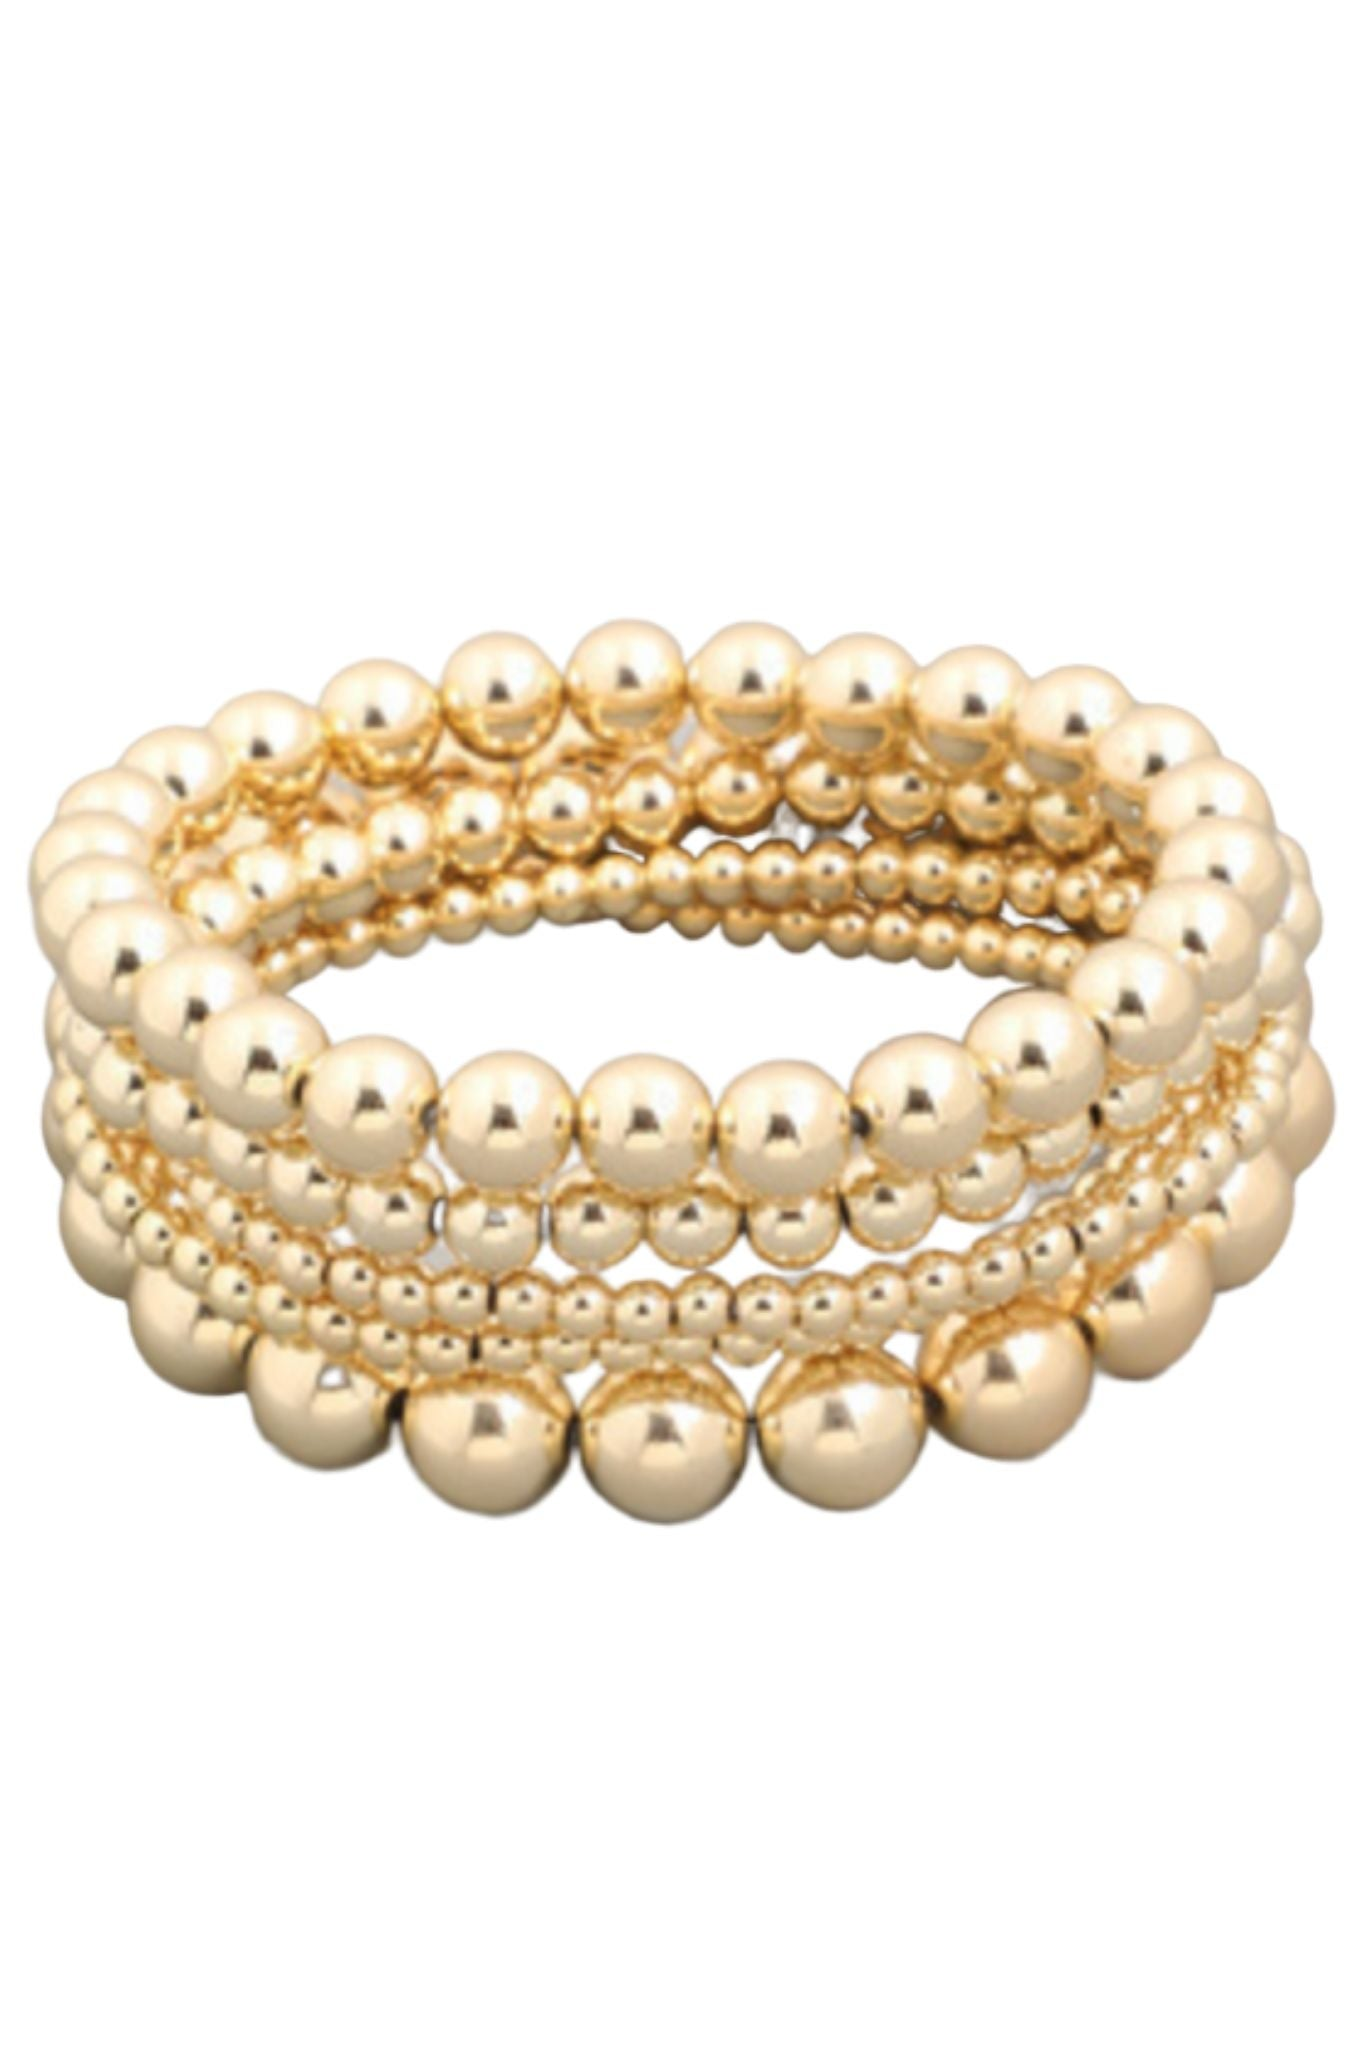 Signature Gold Bead Bracelet Set